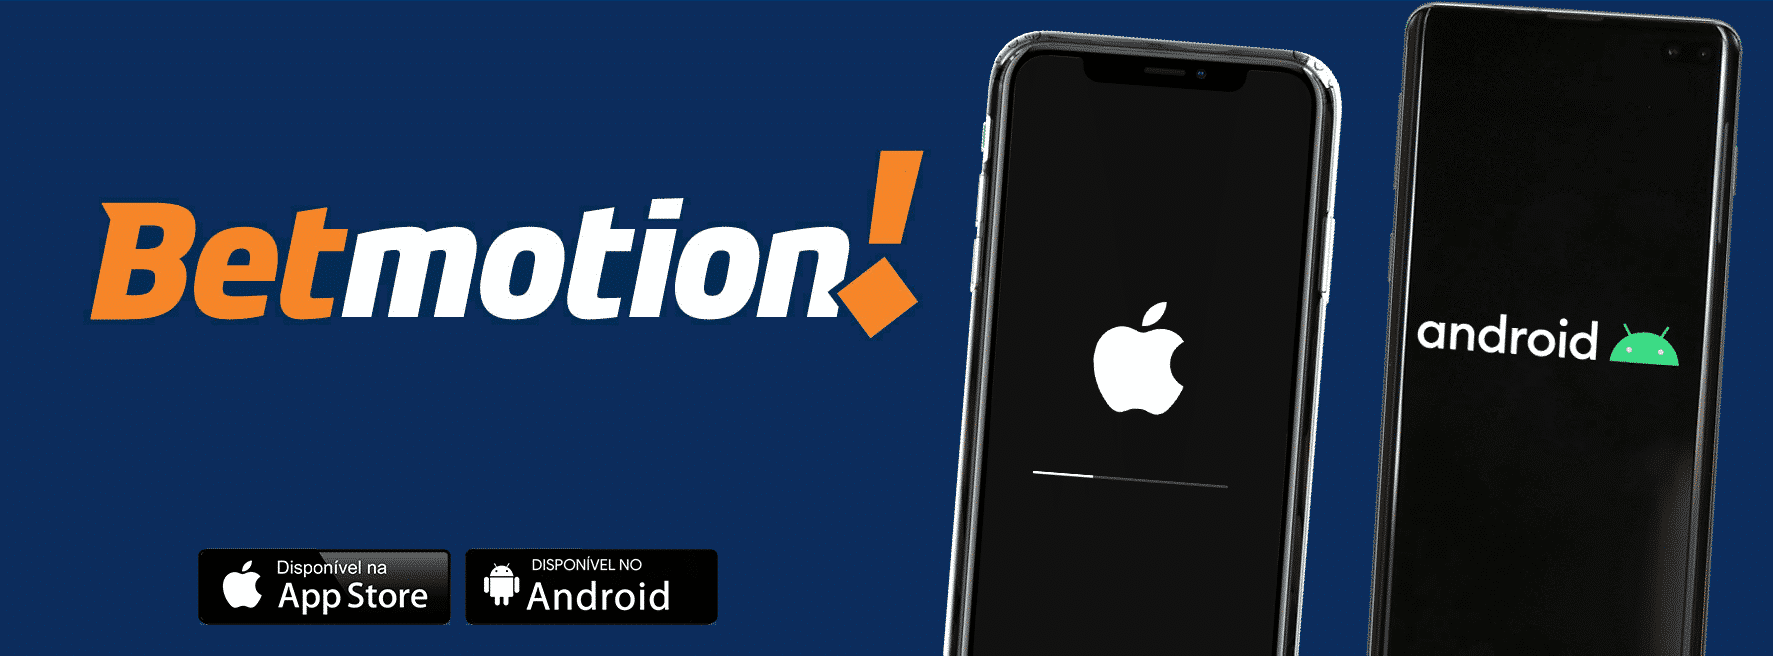 APP Betmotion Mobile